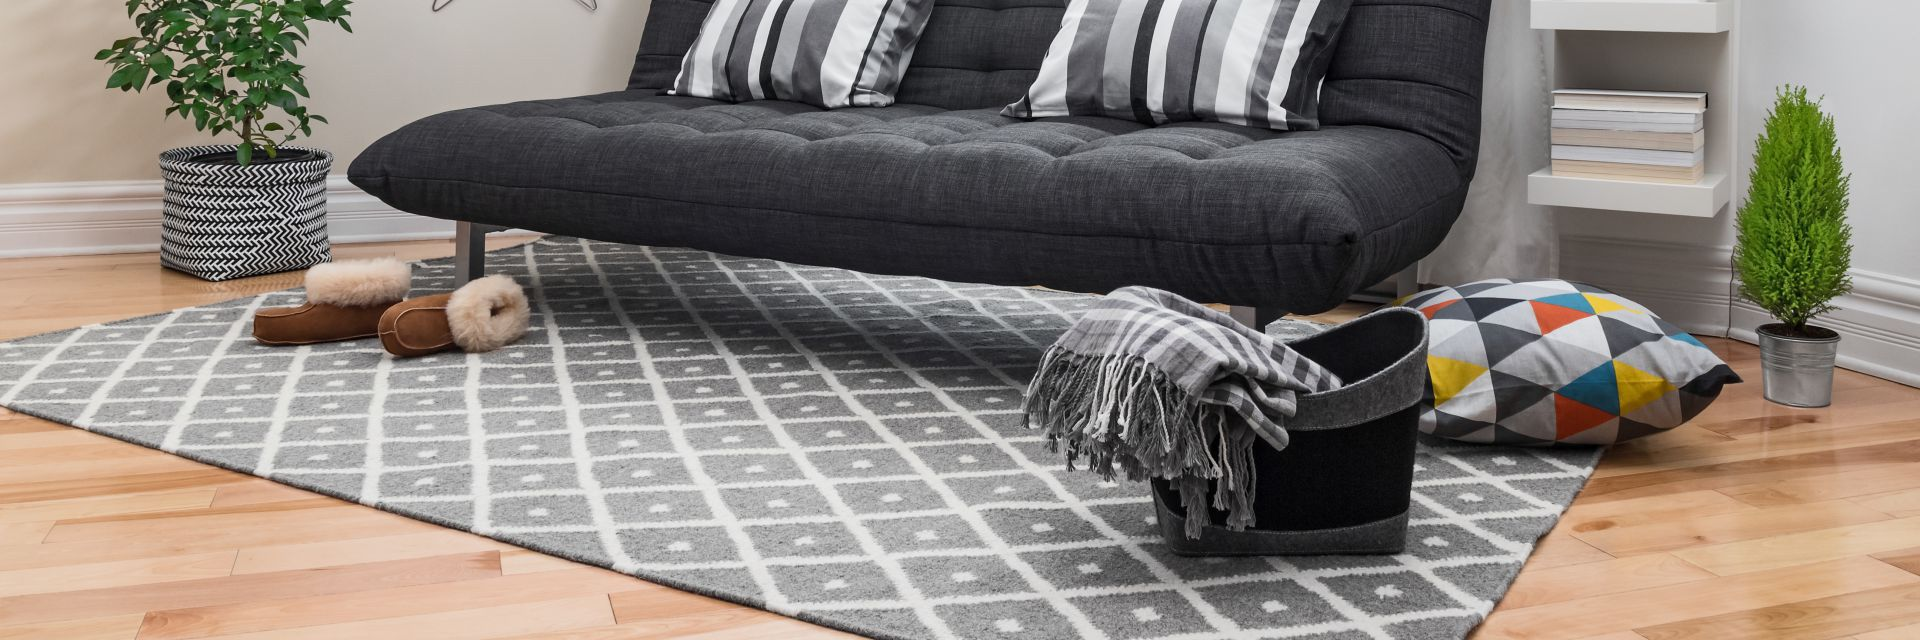 Rug Cleaning Bromley Amp Orpington Acc Carpet Cleaners London